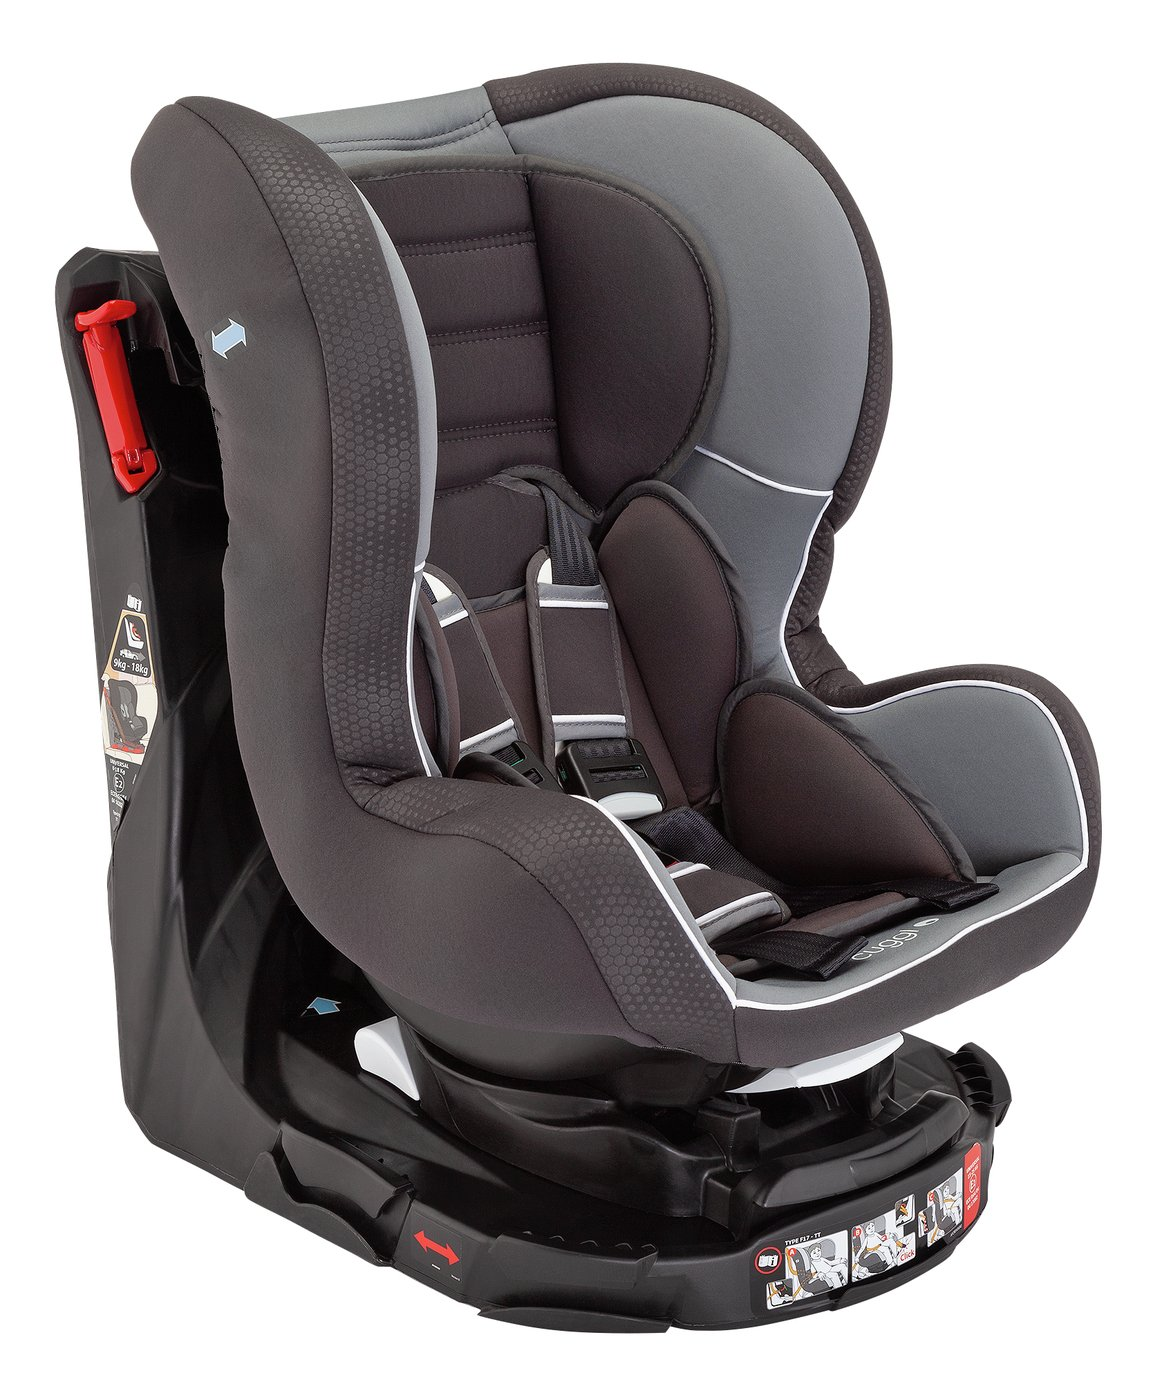 Cuggl Owl Spin Group 0/1/2 Car Seat - Grey from Cuggl